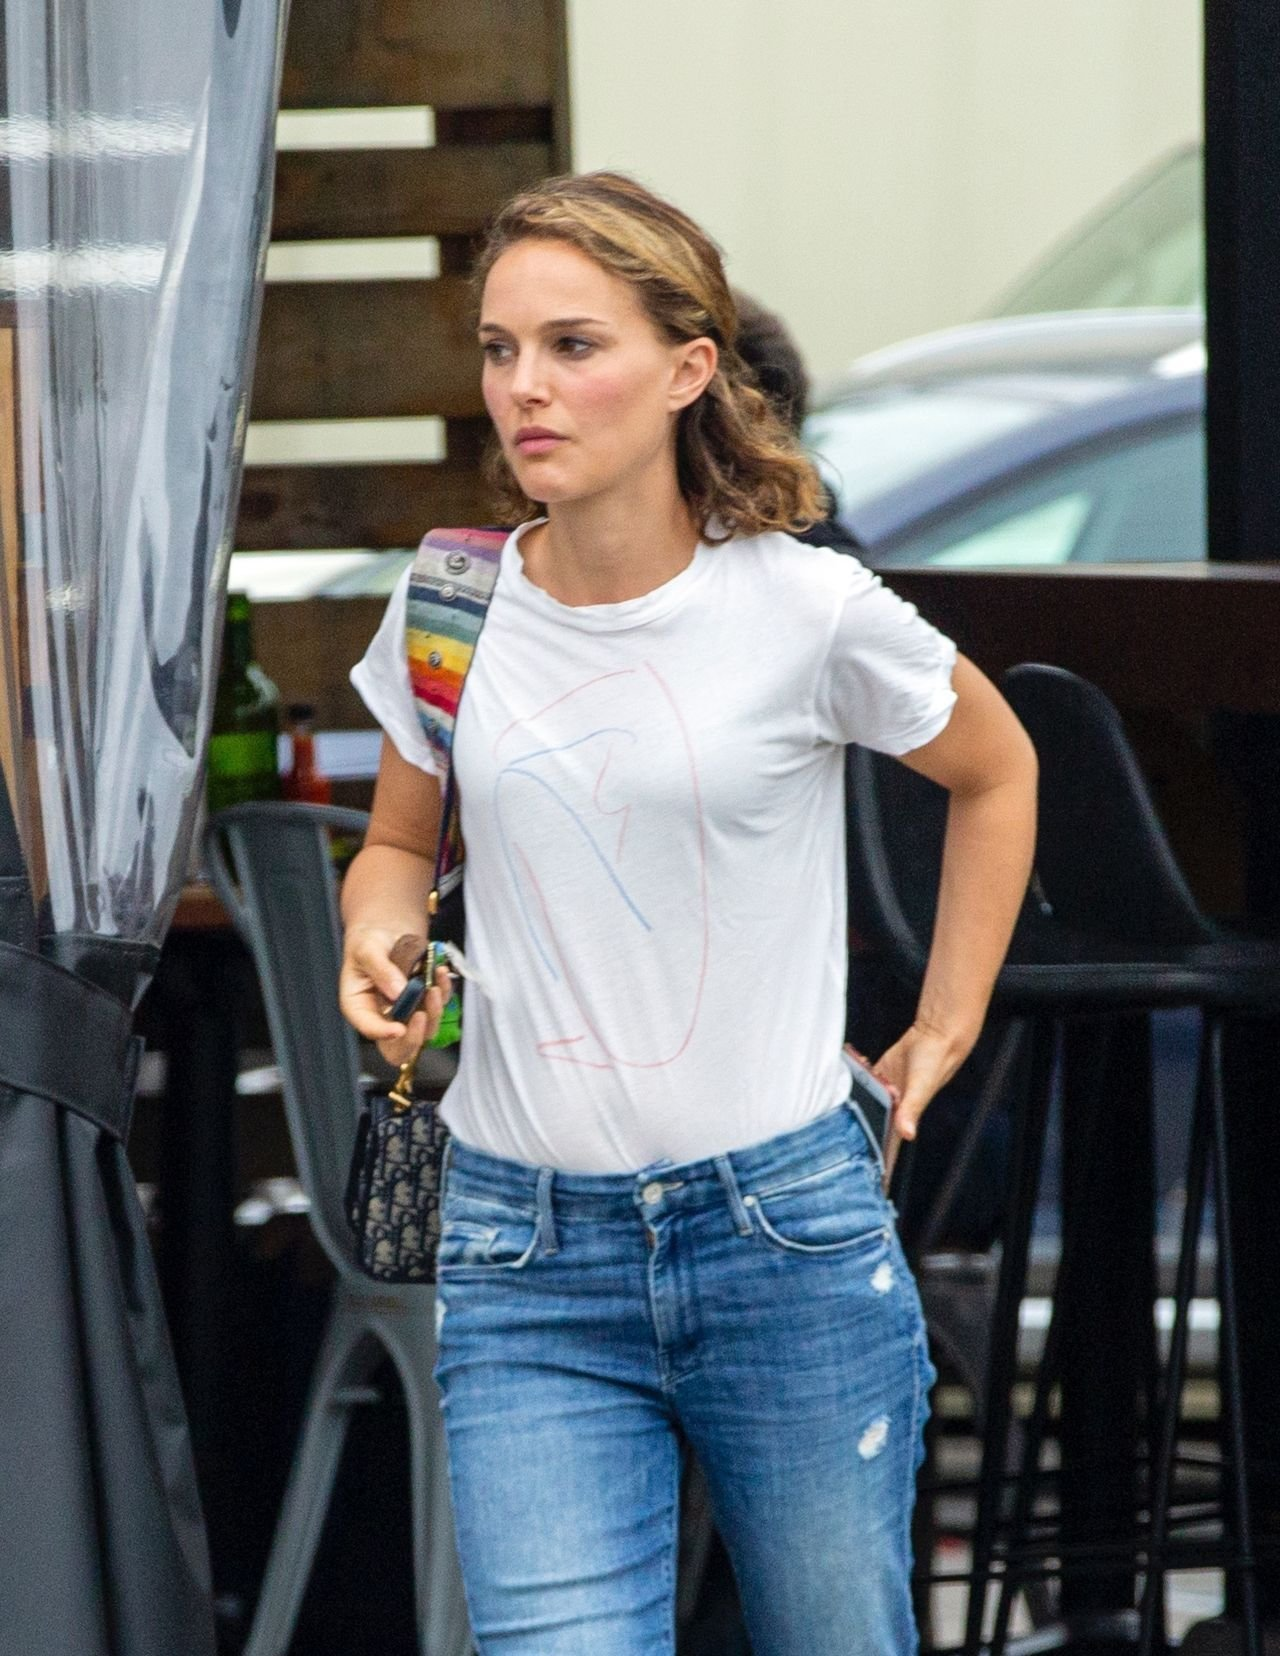 The Best Natalie Portman Street Style 06 25 2019 Pictures